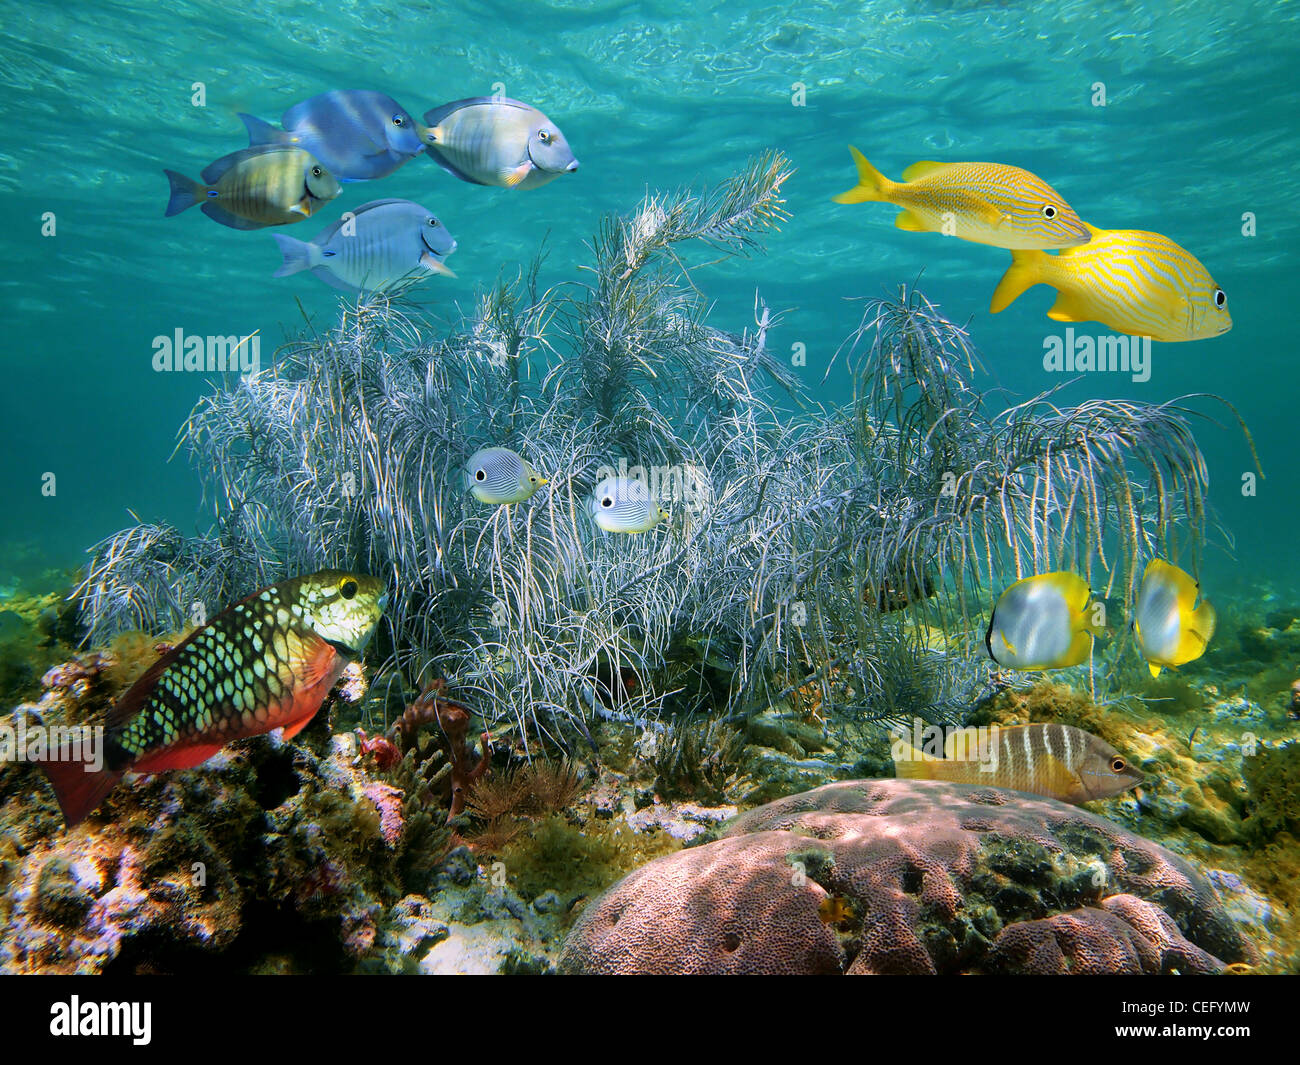 Gorgonian soft coral with colorful tropical fish, Bahamas - Stock Image